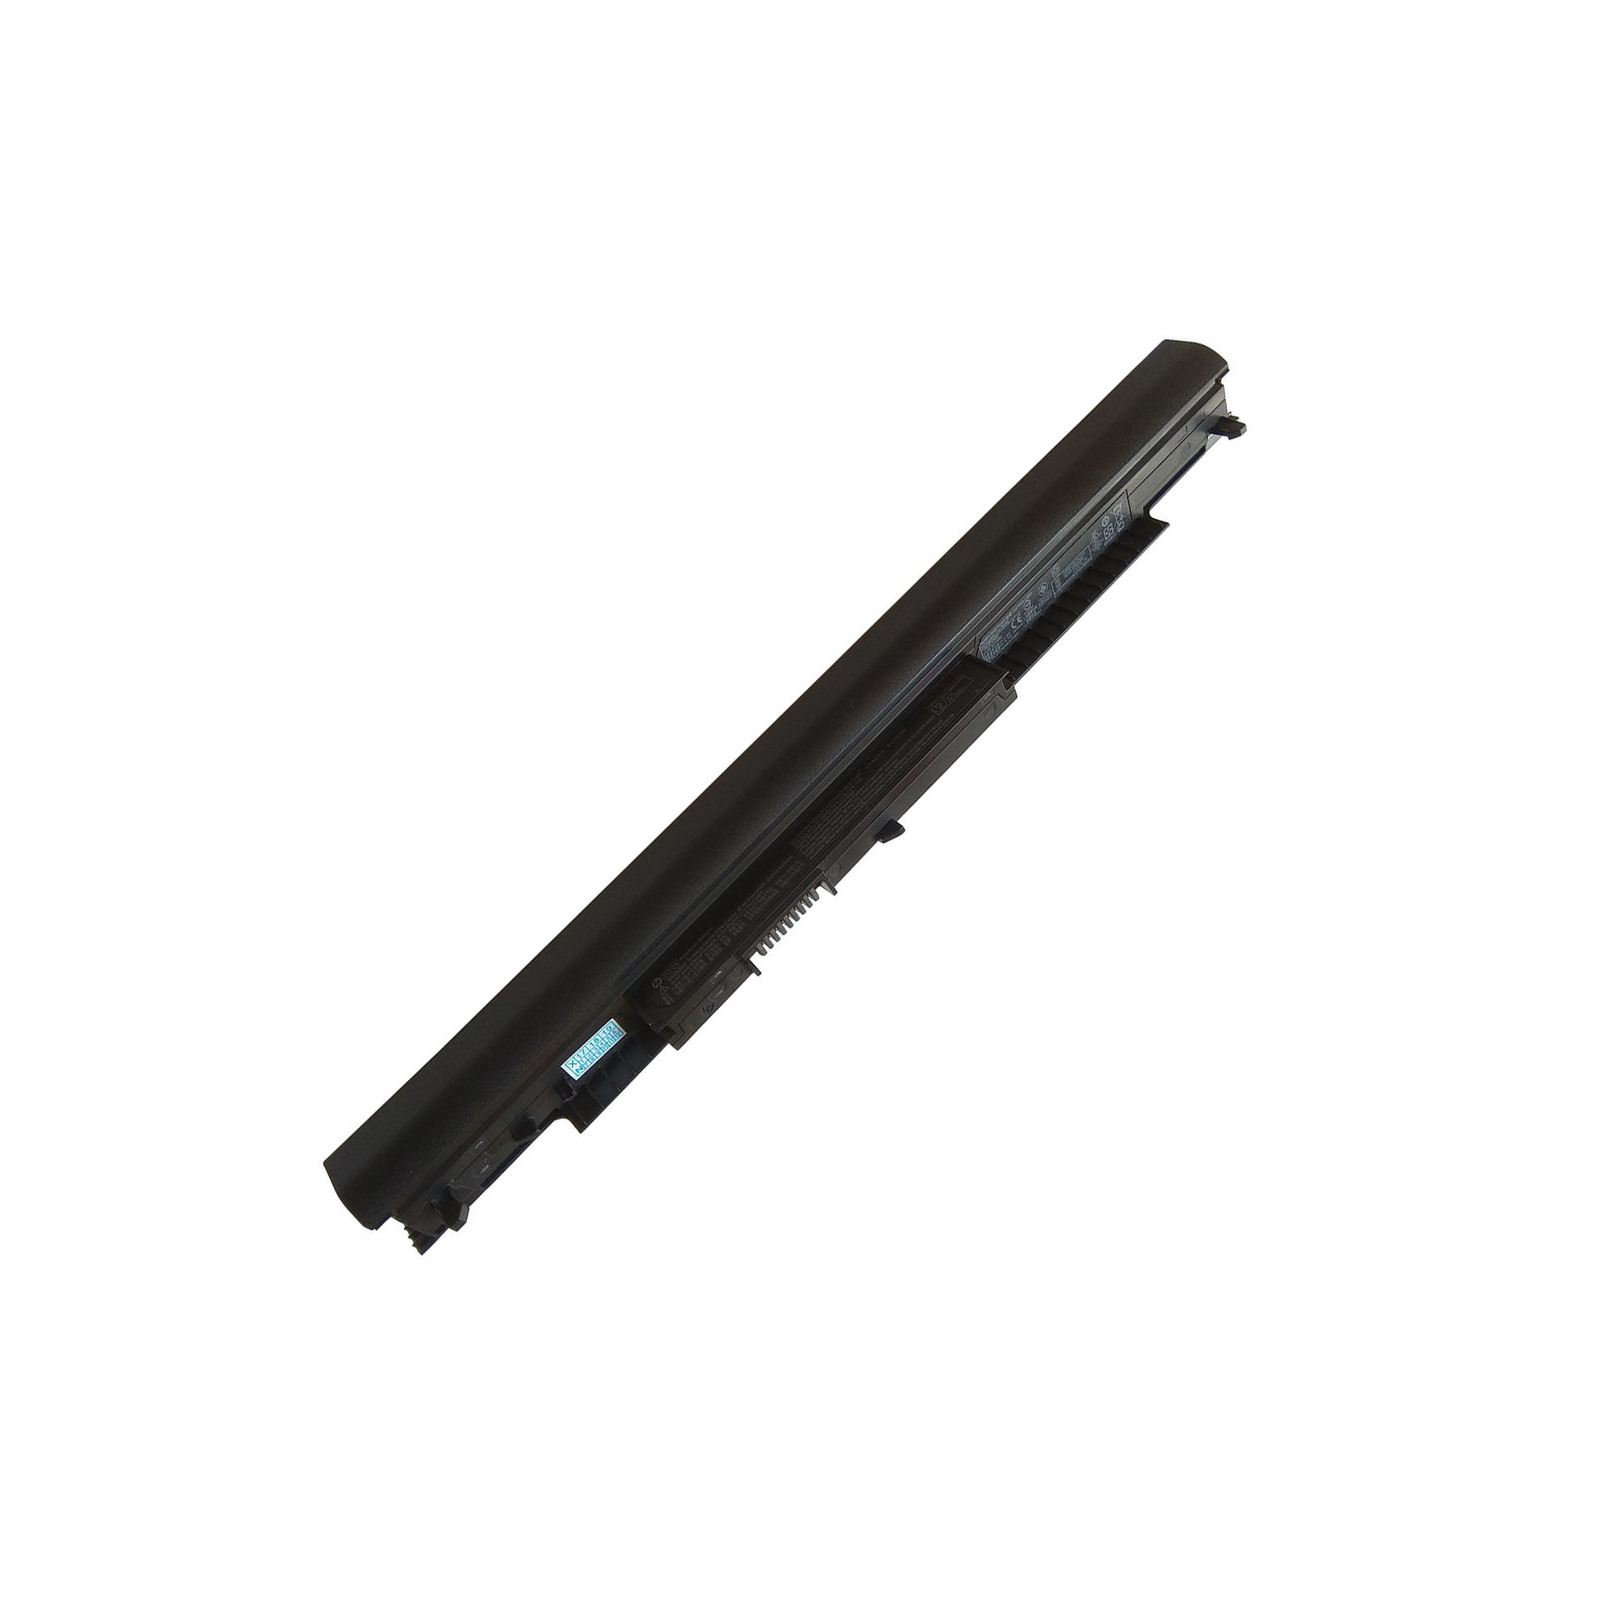 Primary image for HP 15-AC018NE M9H17EA Battery 807957-001 HS04 807612-131 HSTNN-PB6T HSTNN-IB7B